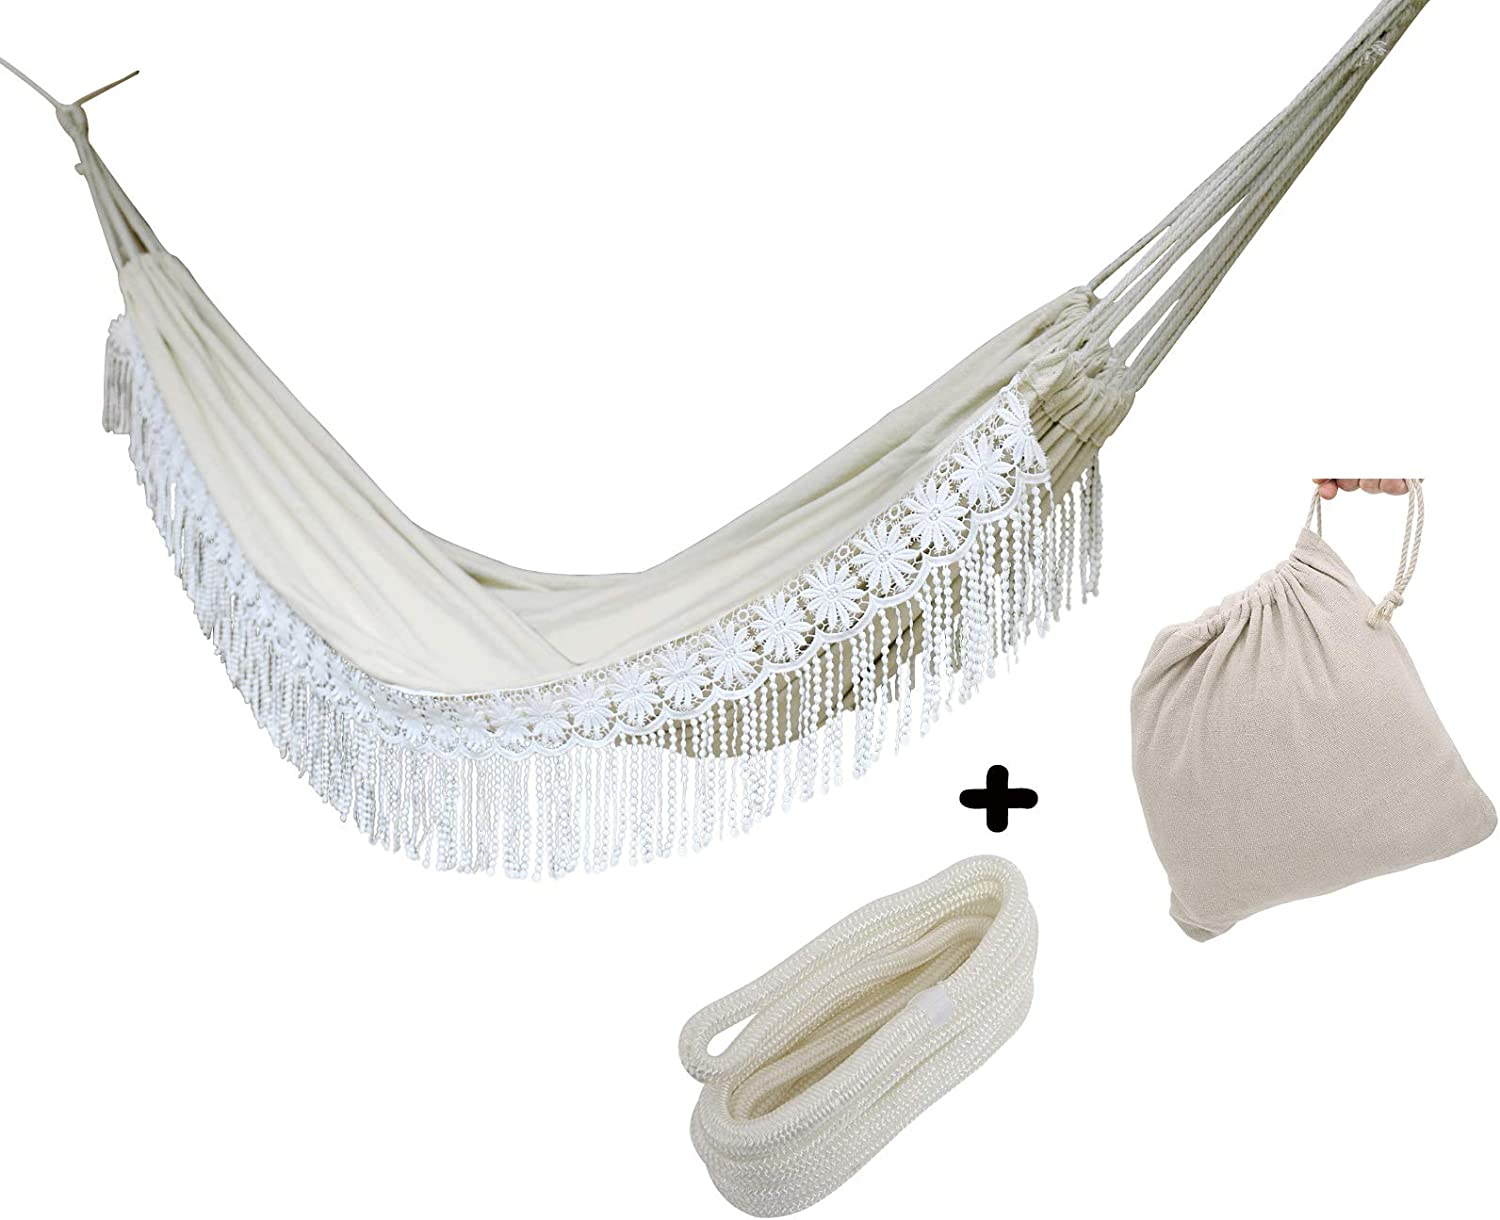 Boho Large Handmade Brazilian Natural Ecru Cotton Hand Woven Hammock with White Crochet Fringe, Macram Double Deluxe White Lace Wedding Hammock with Tree Rope and Carry Bag